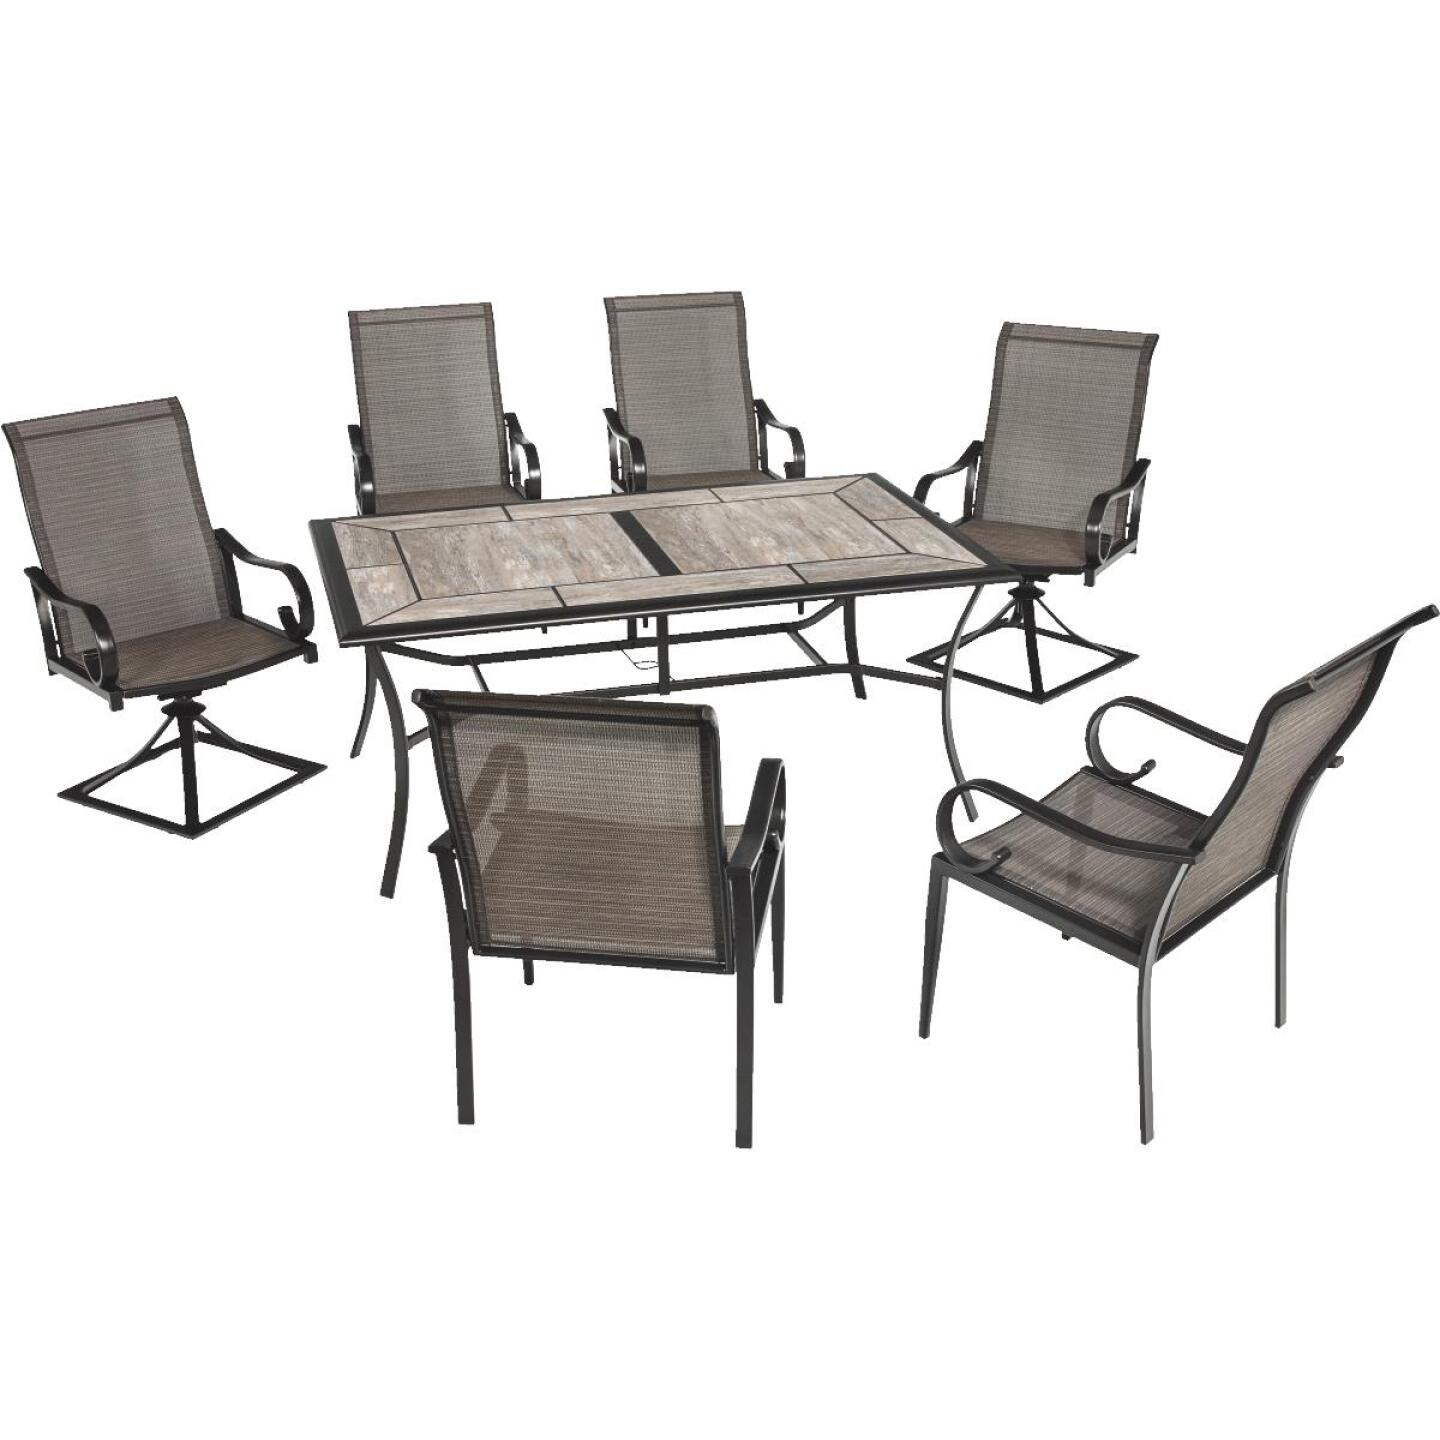 Outdoor Expressions Berkshire 7-Piece Dining Set Image 81